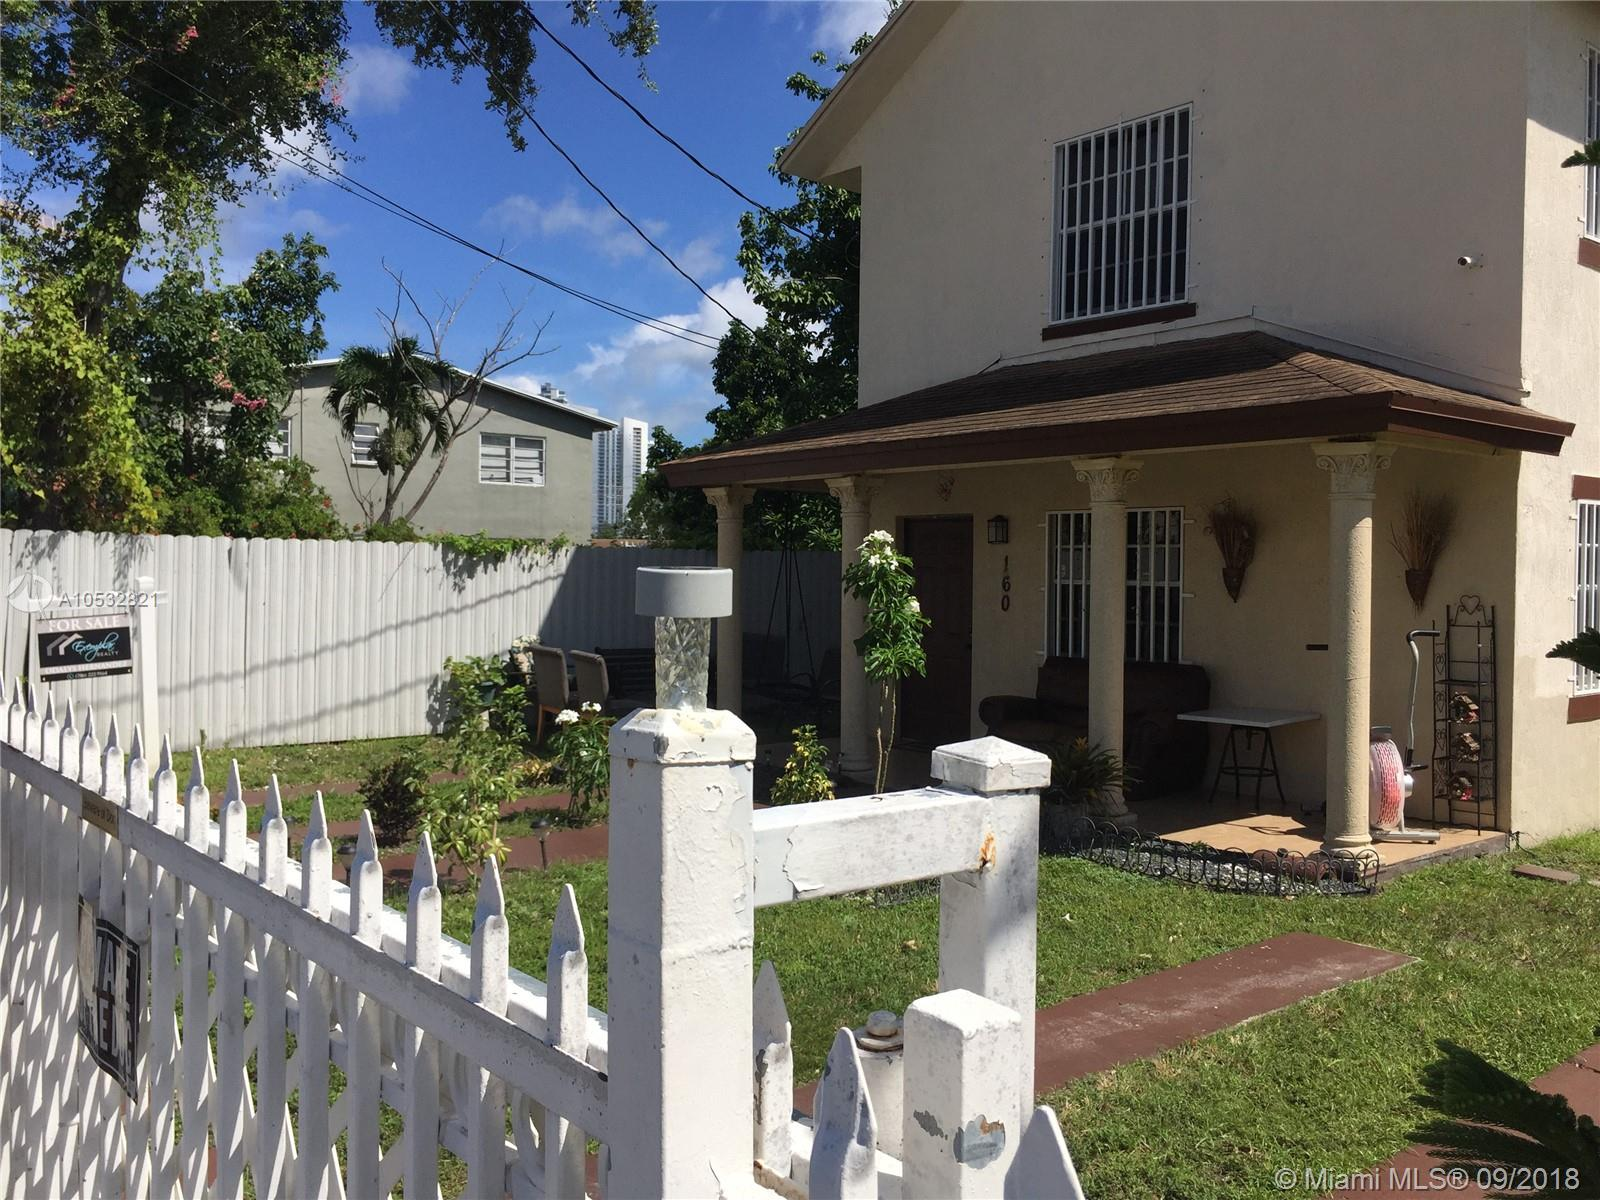 Details for 160 27th St, Miami, FL 33127